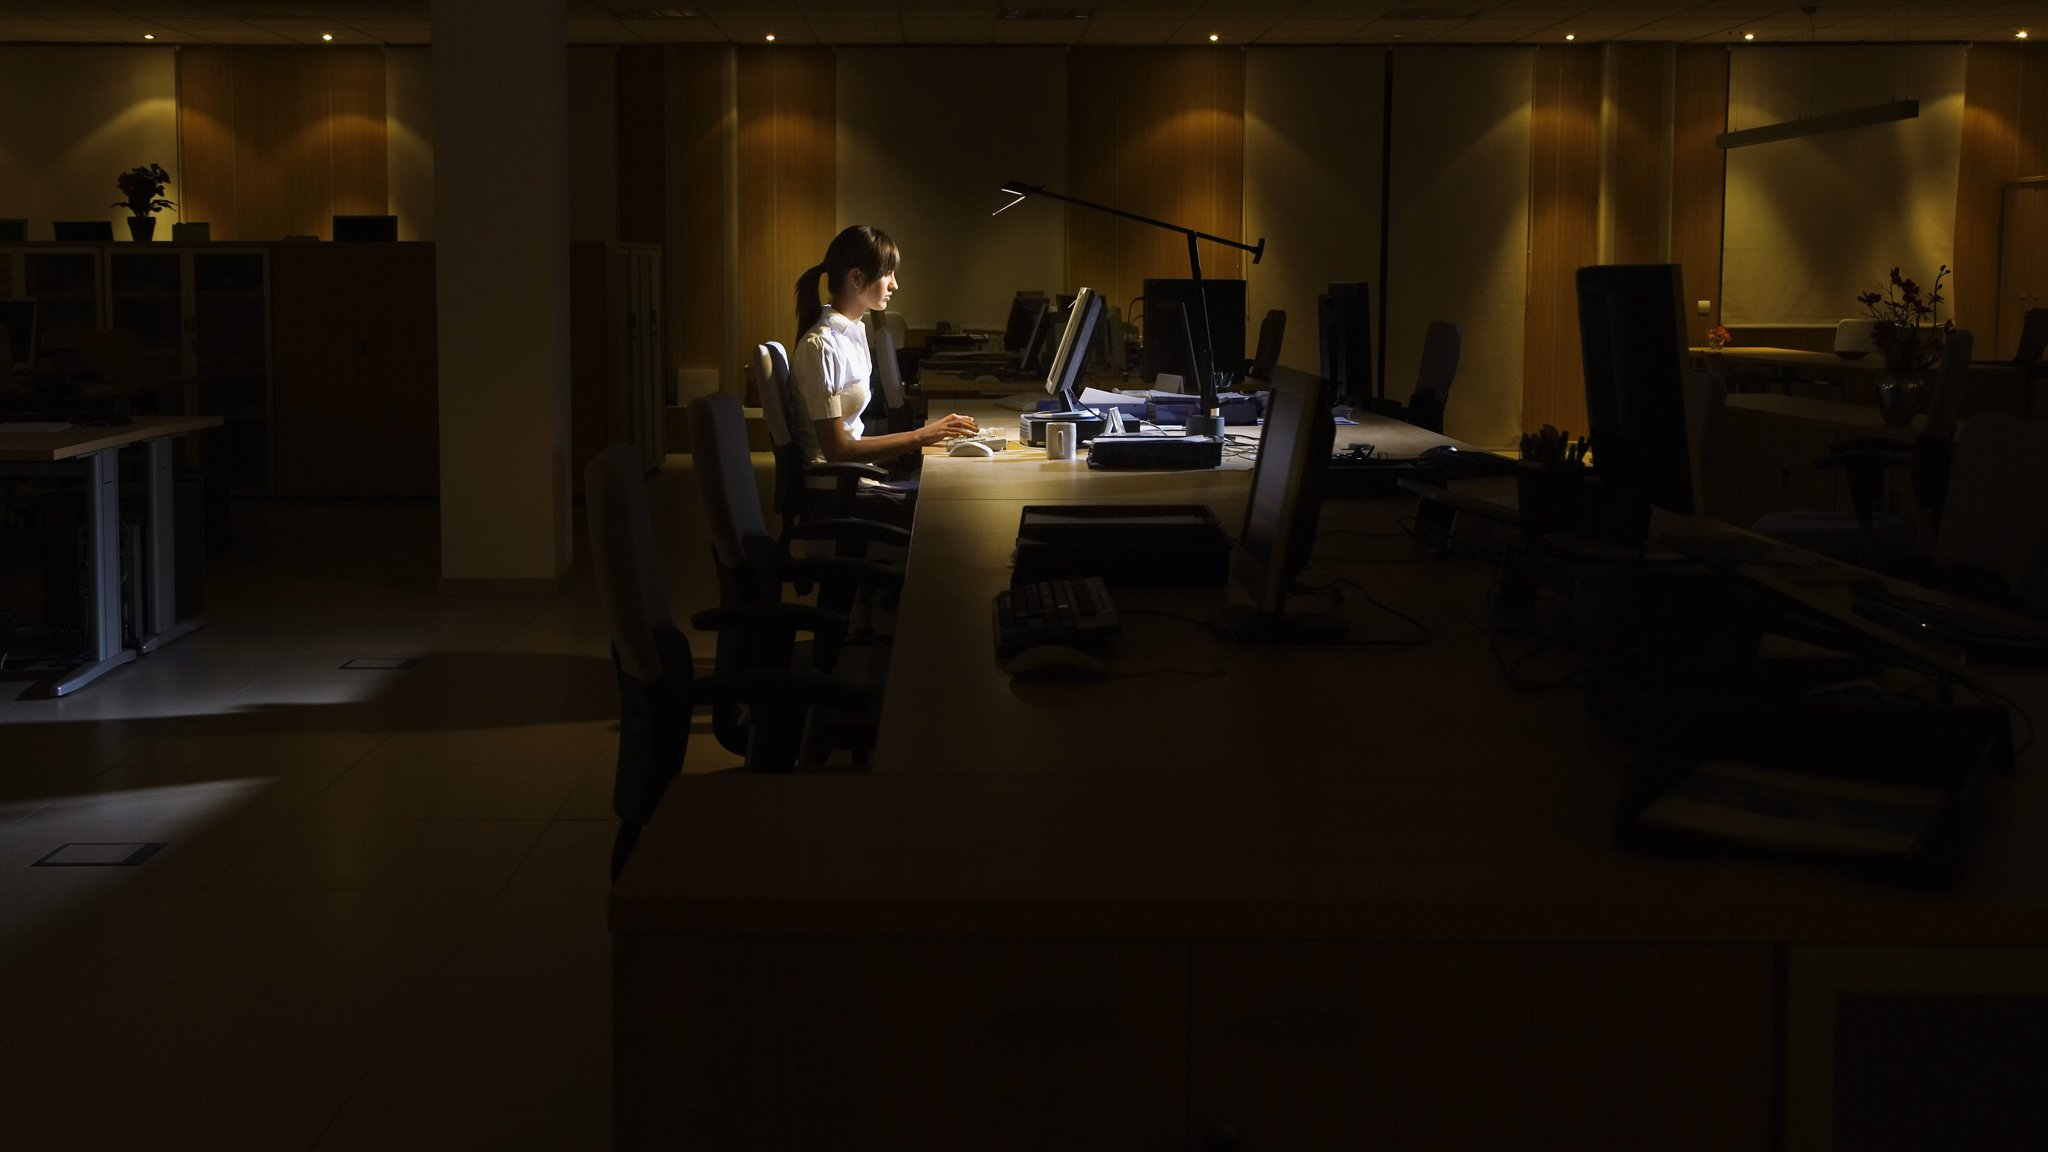 Woman Using Computer In Dark Office